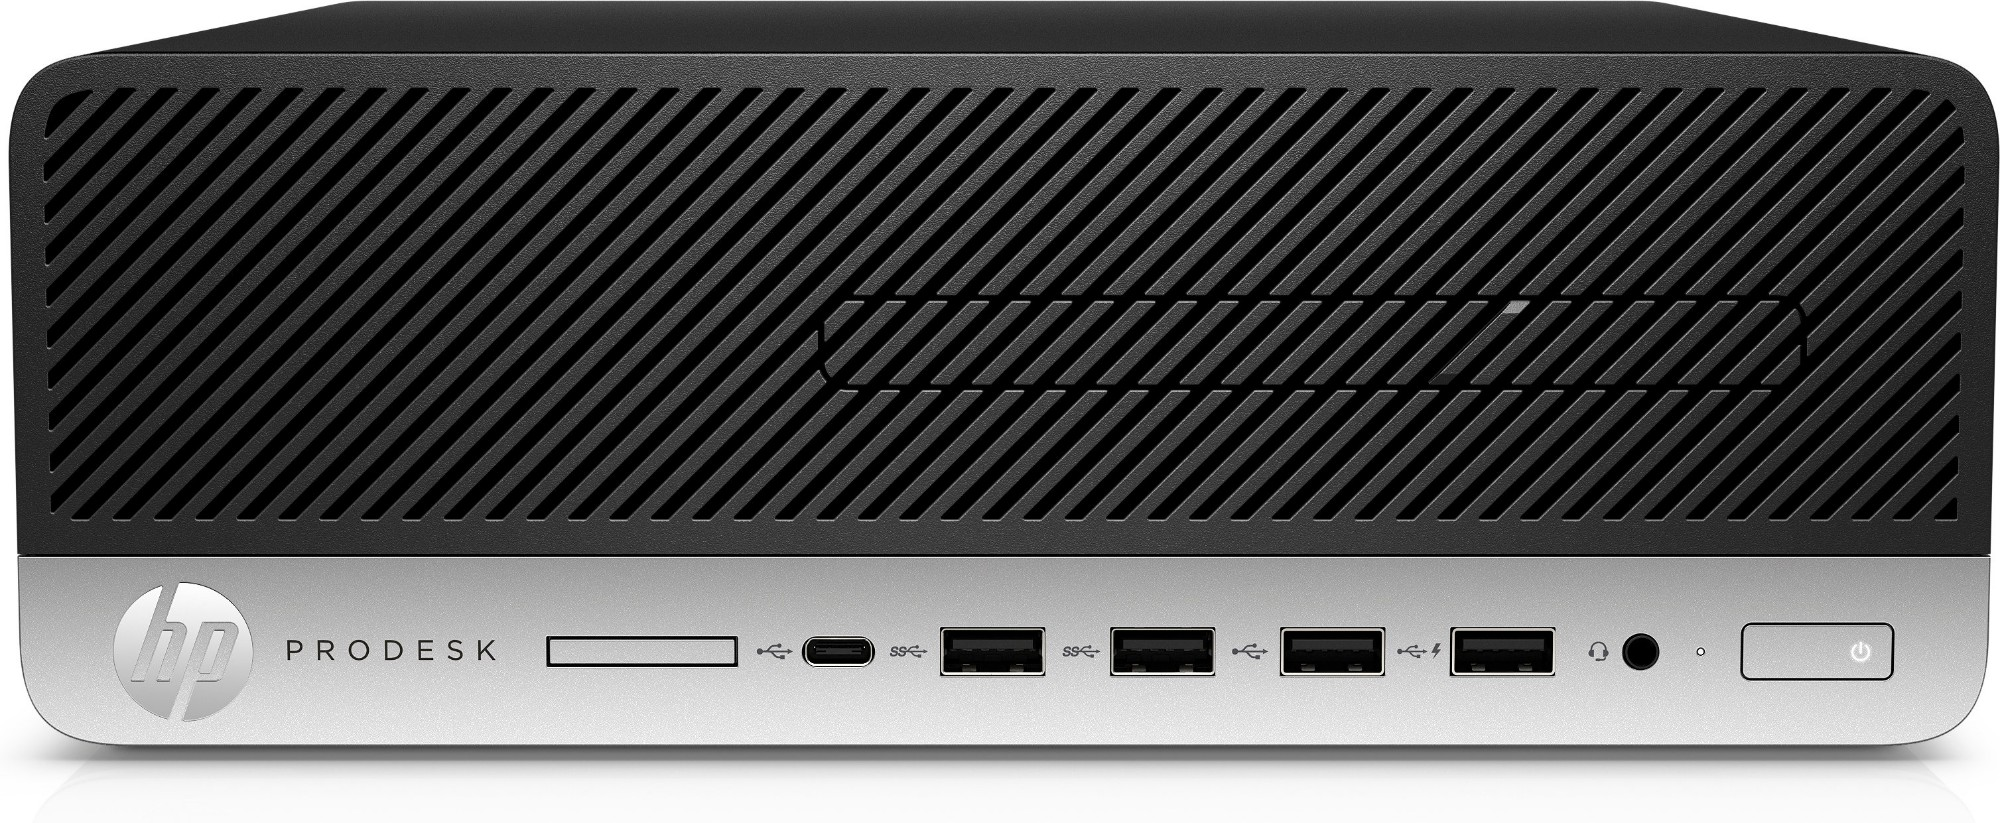 hp prodesk 600 g3 maintenance and service guide